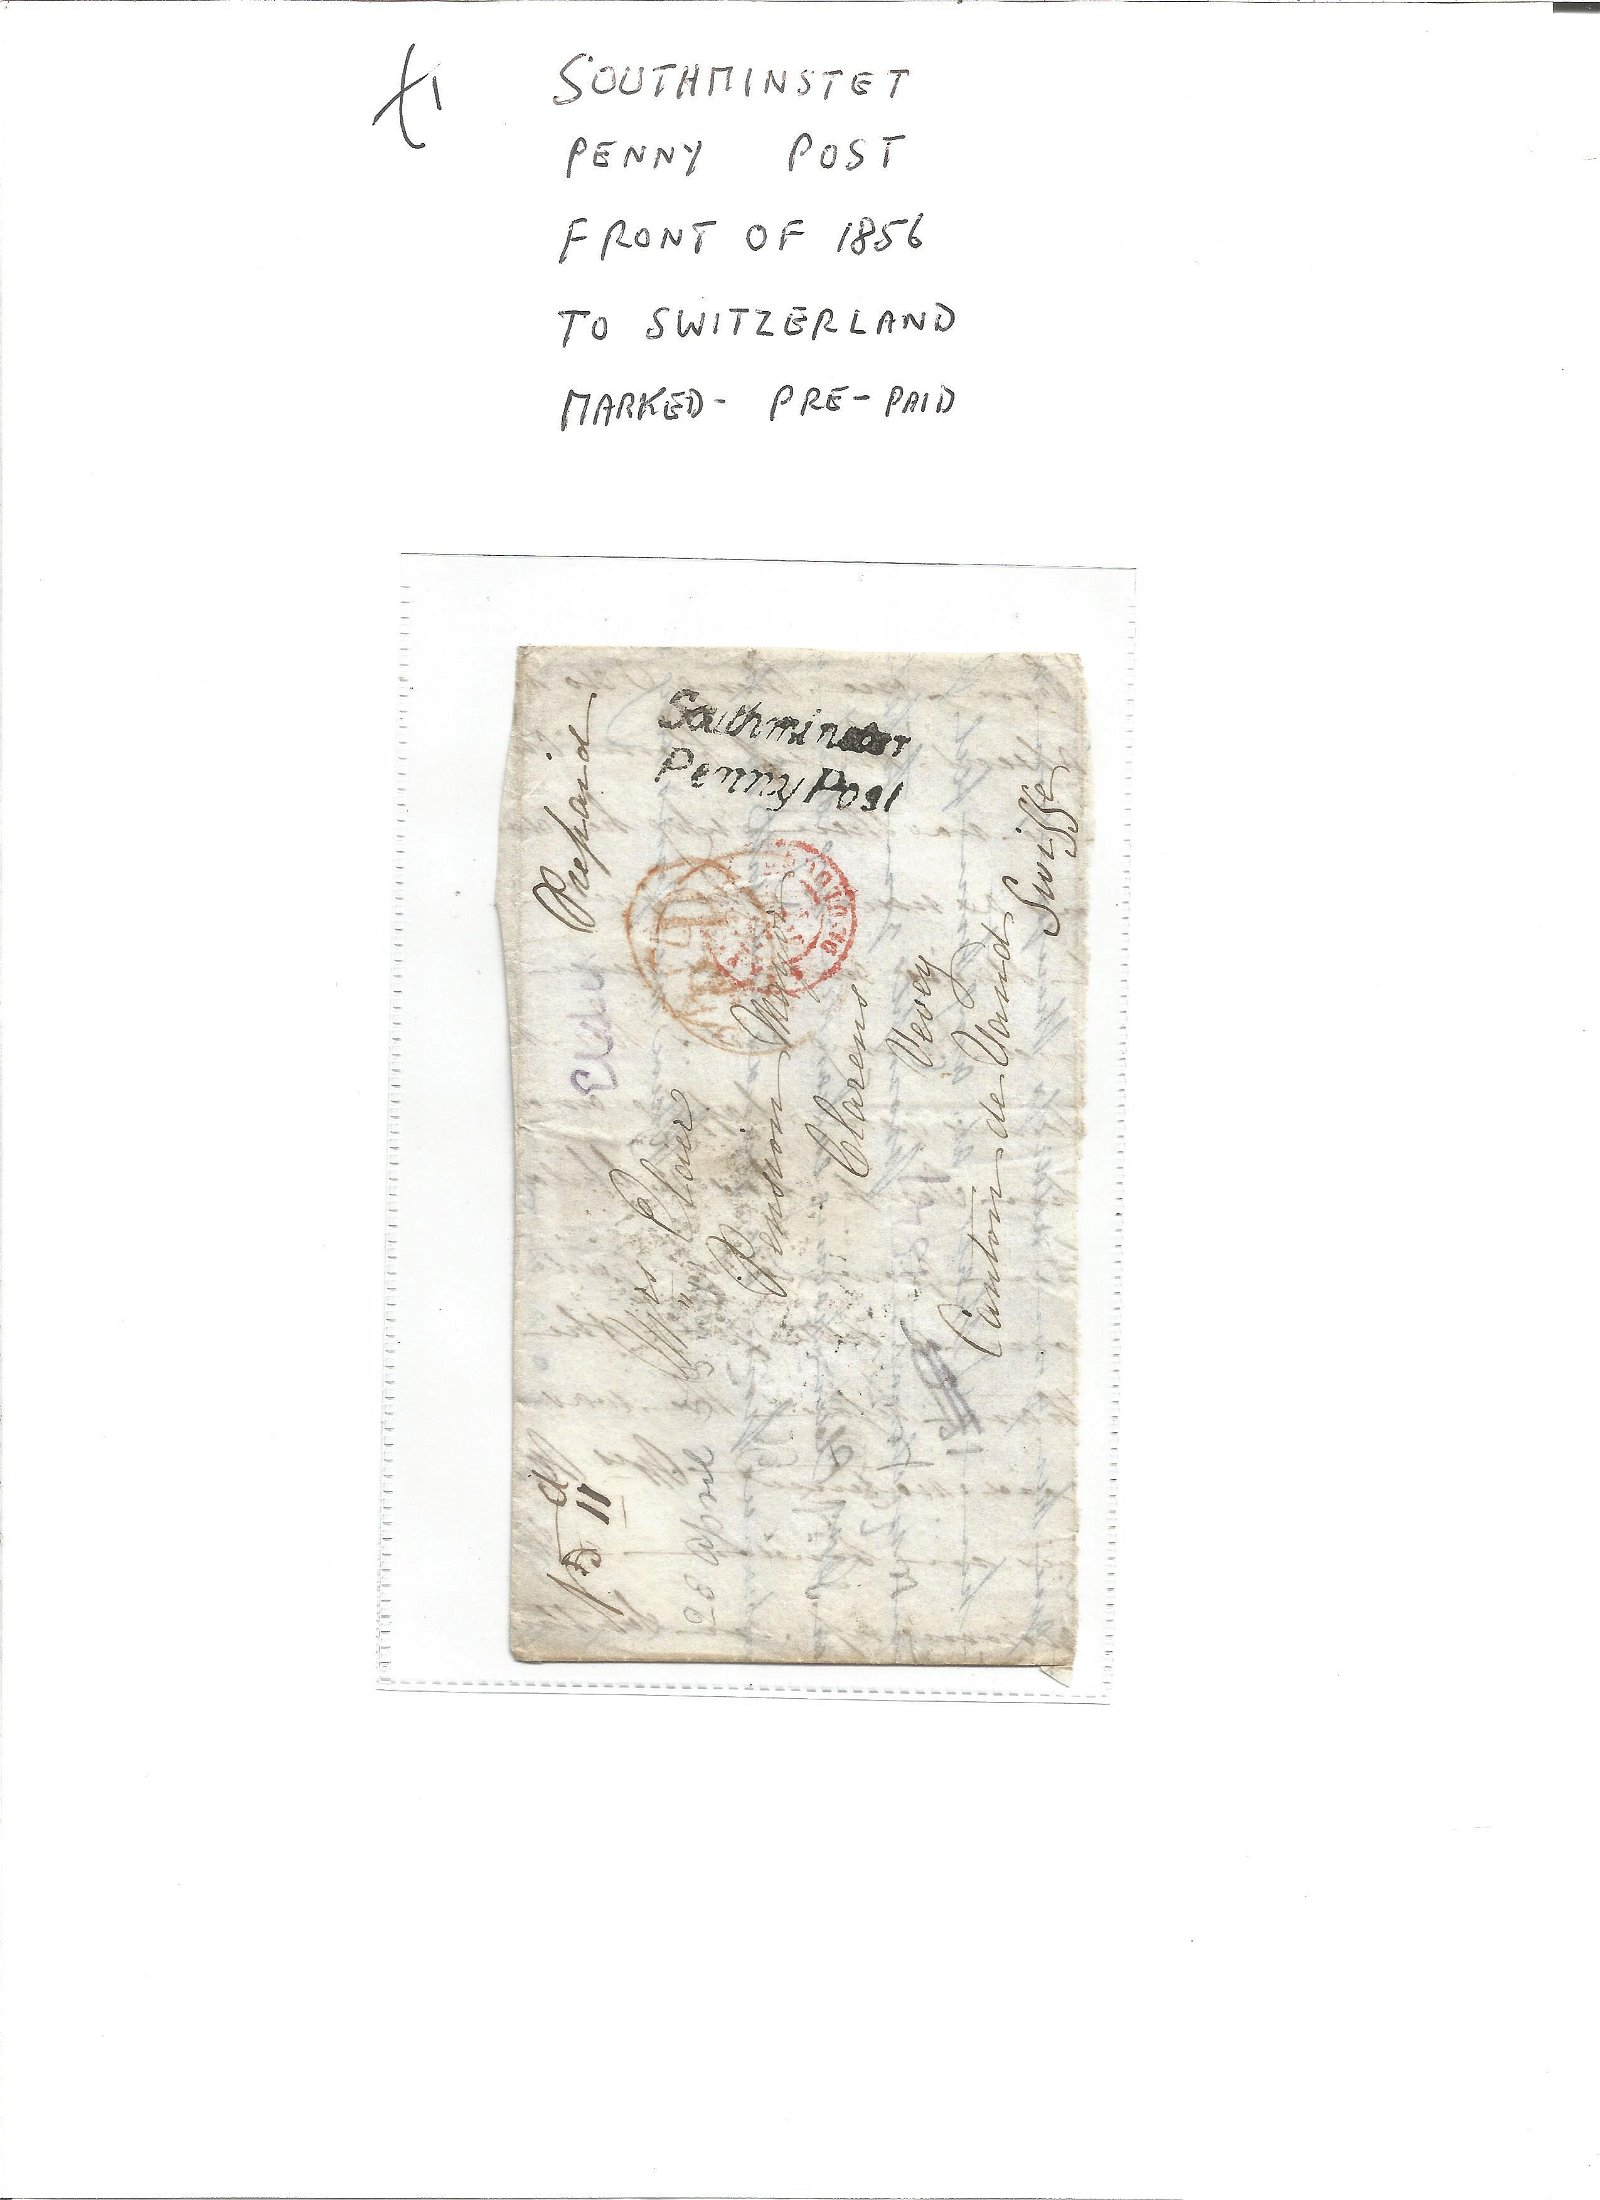 Postal History. Southminster penny post. Front of 1856